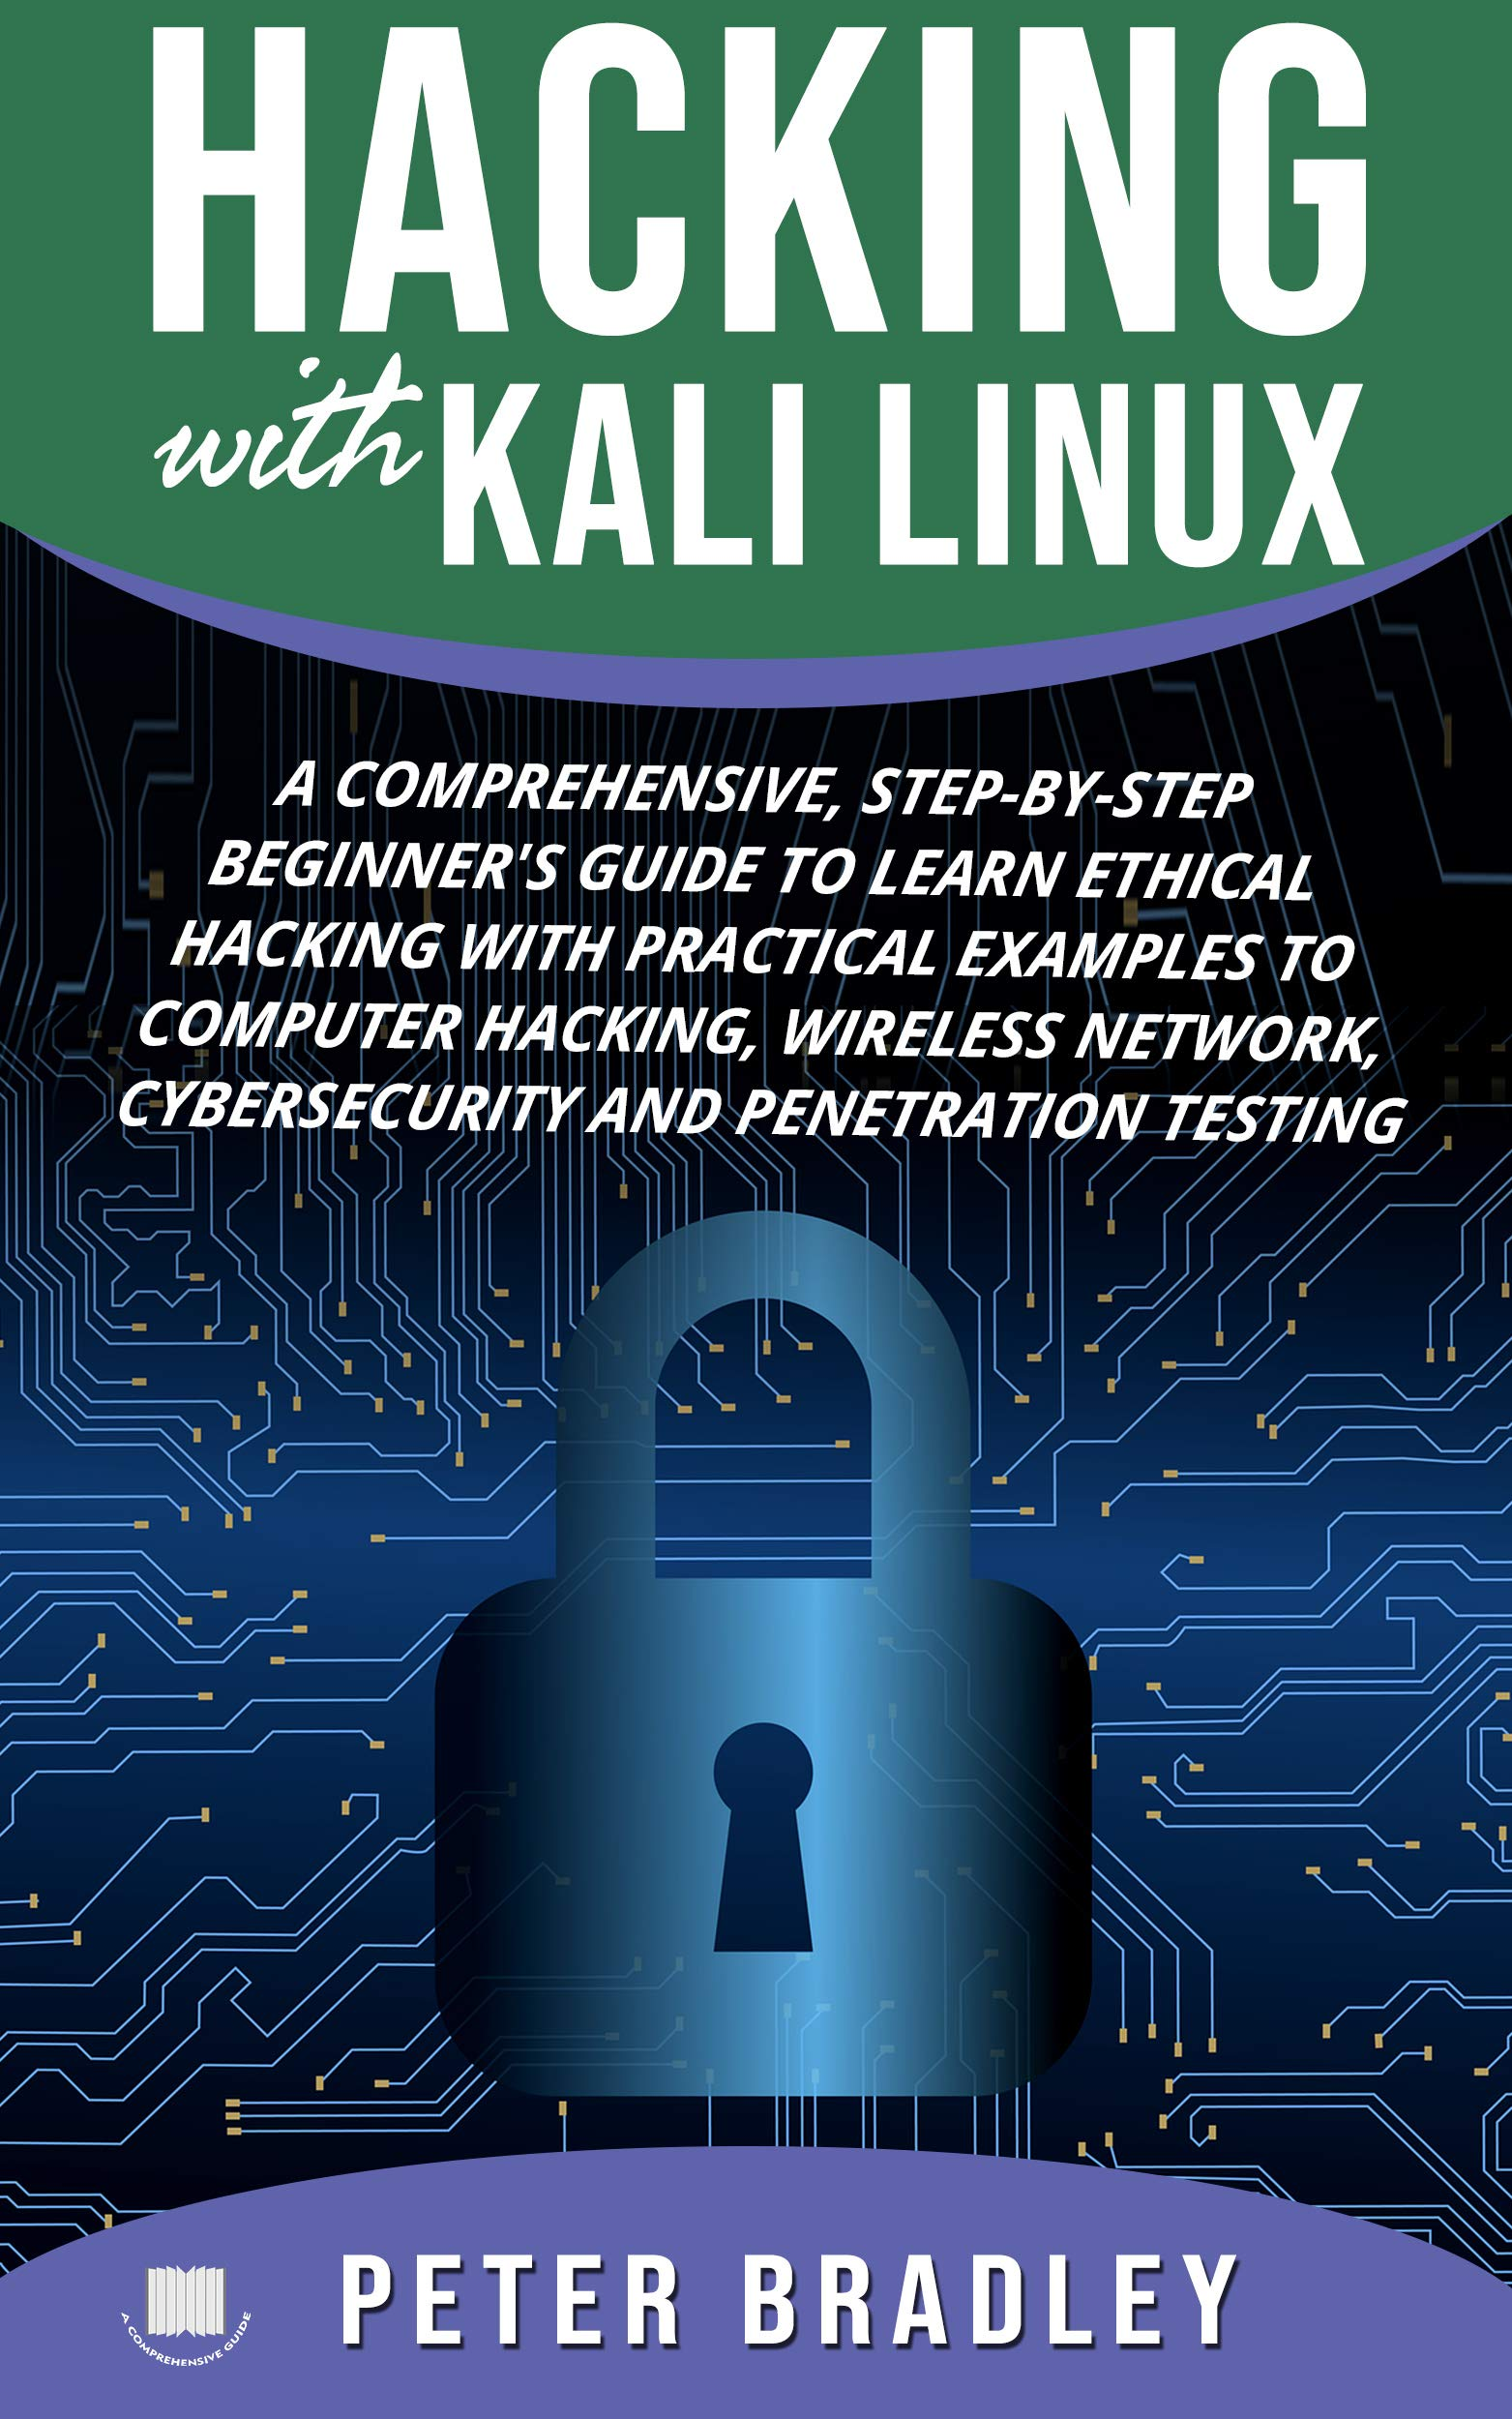 Hacking With Kali Linux  : A Comprehensive, Step-By-Step Beginner's Guide to Learn Ethical Hacking With Practical Examples to Computer Hacking, Wireless ... and Penetration Testing por Peter Bradley